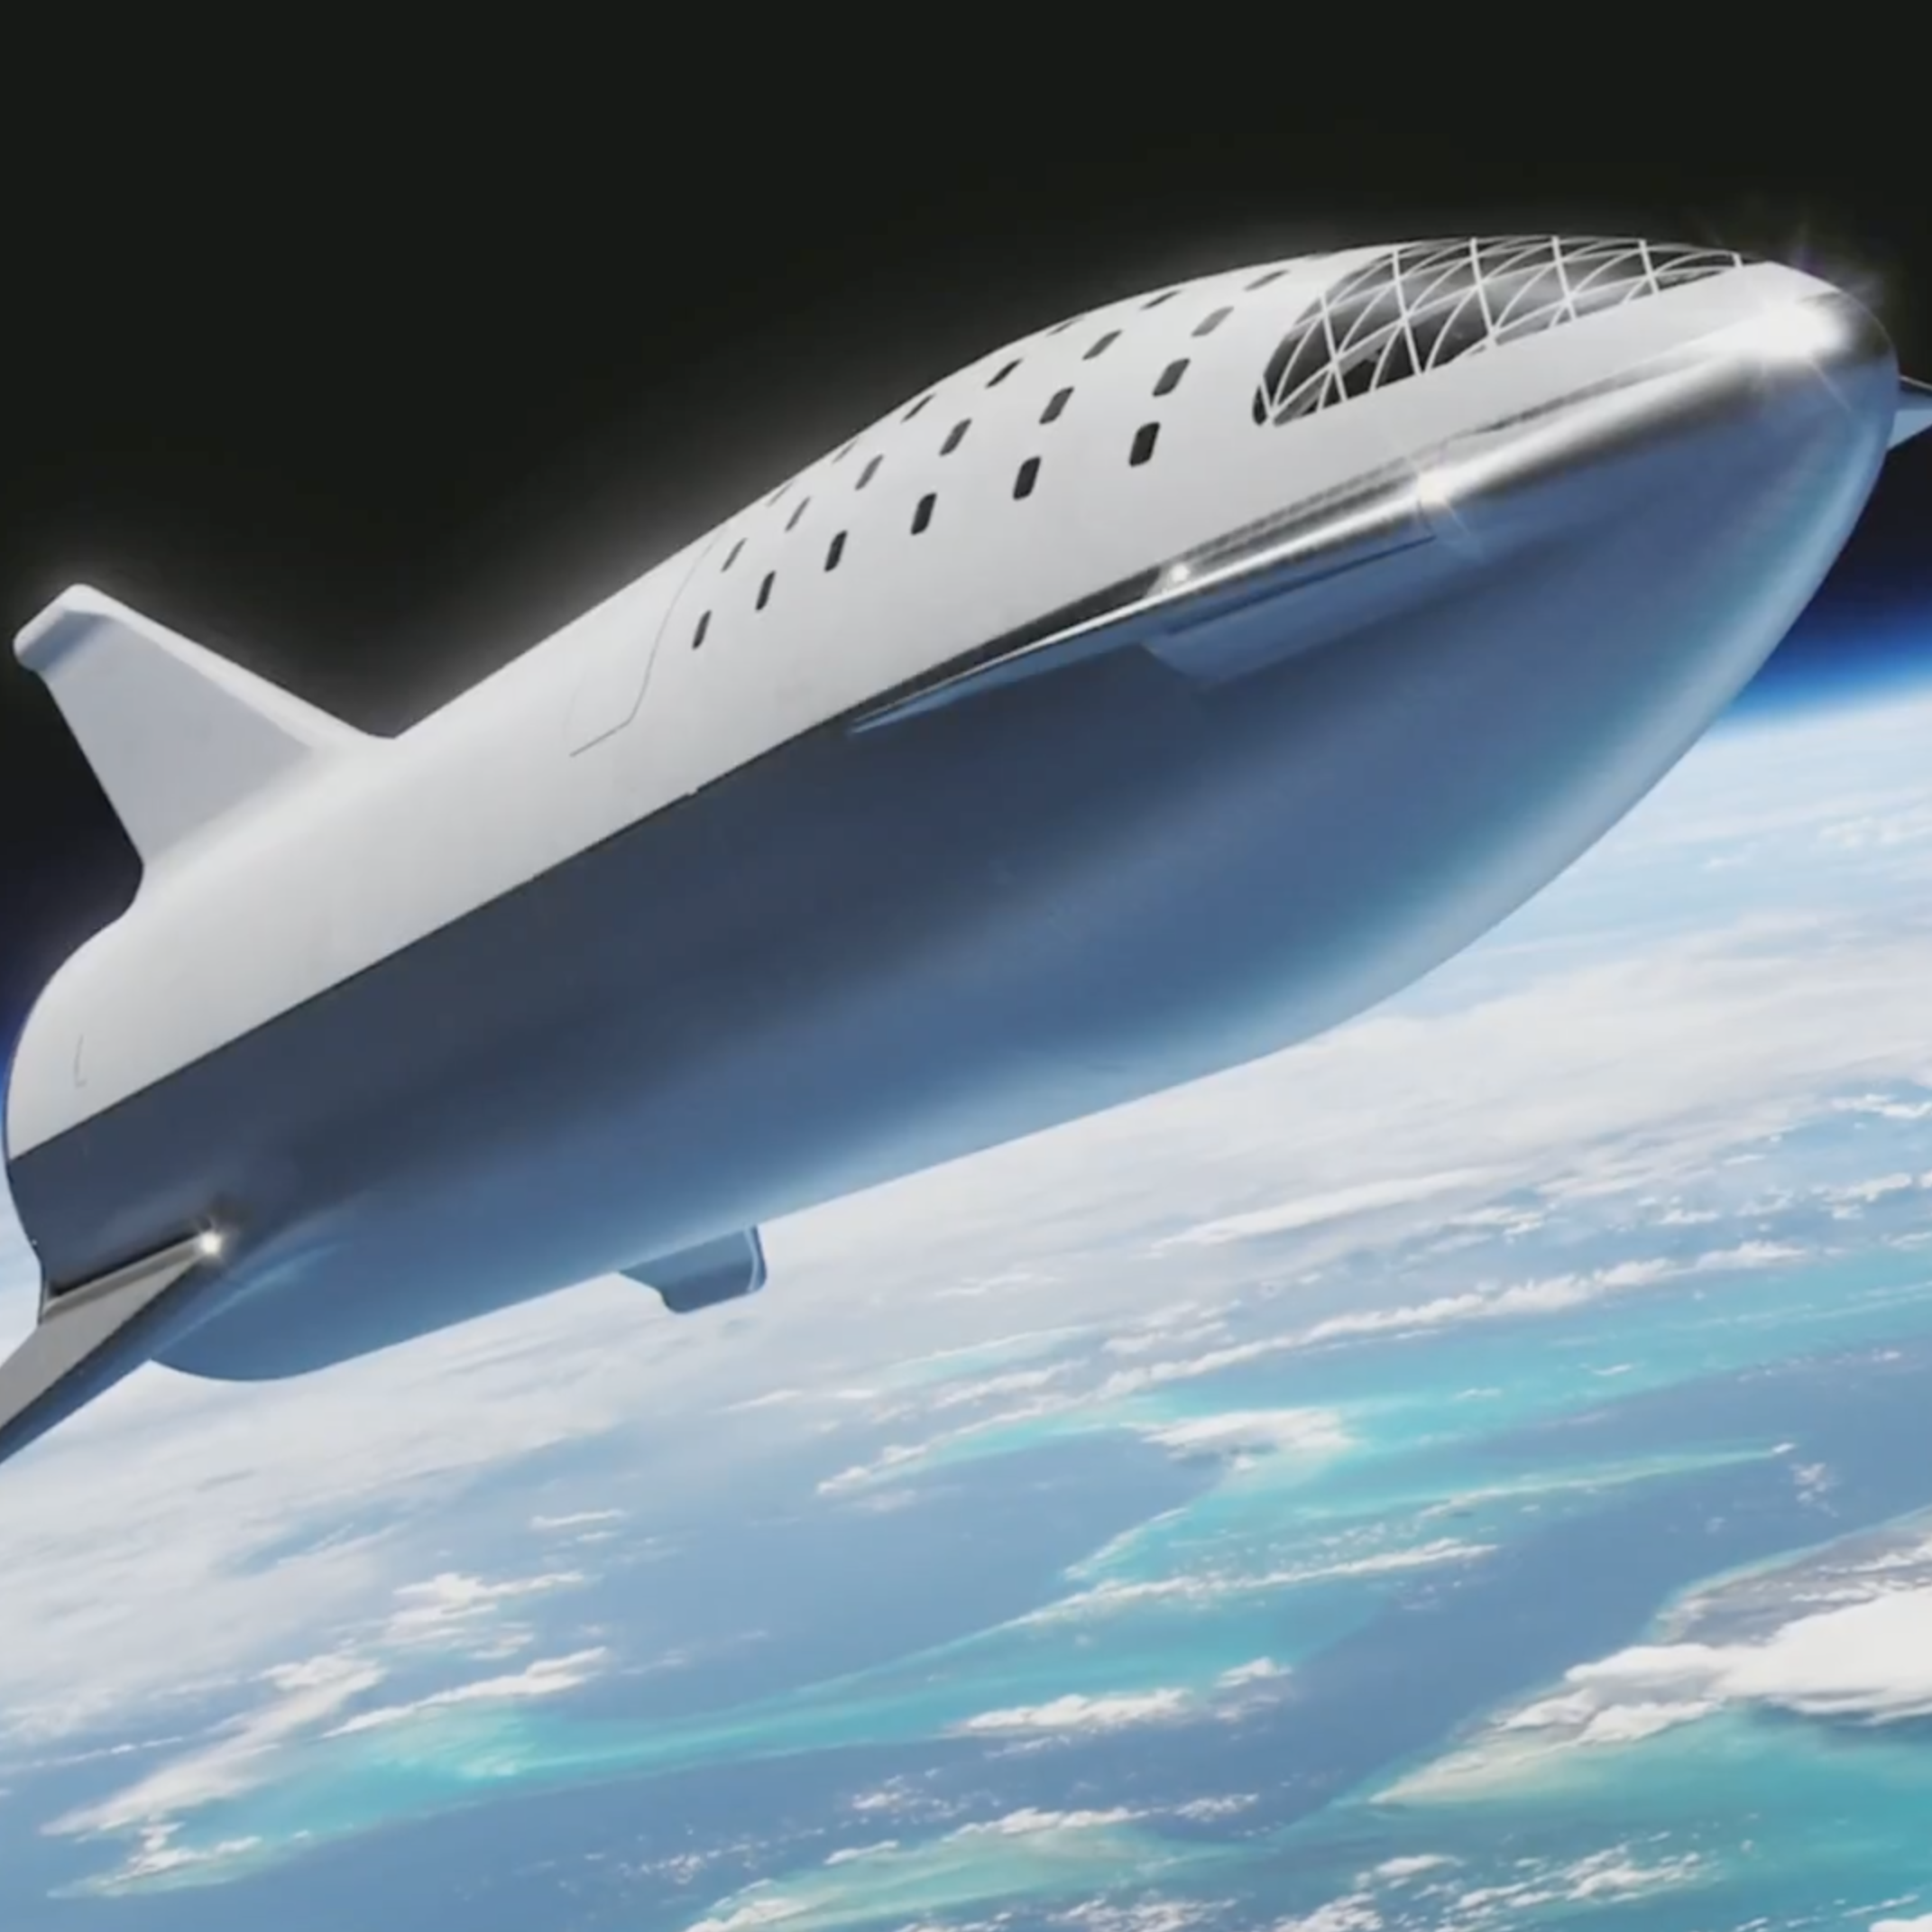 Elon Musk announces new name for SpaceX's deep space BFR vehicle